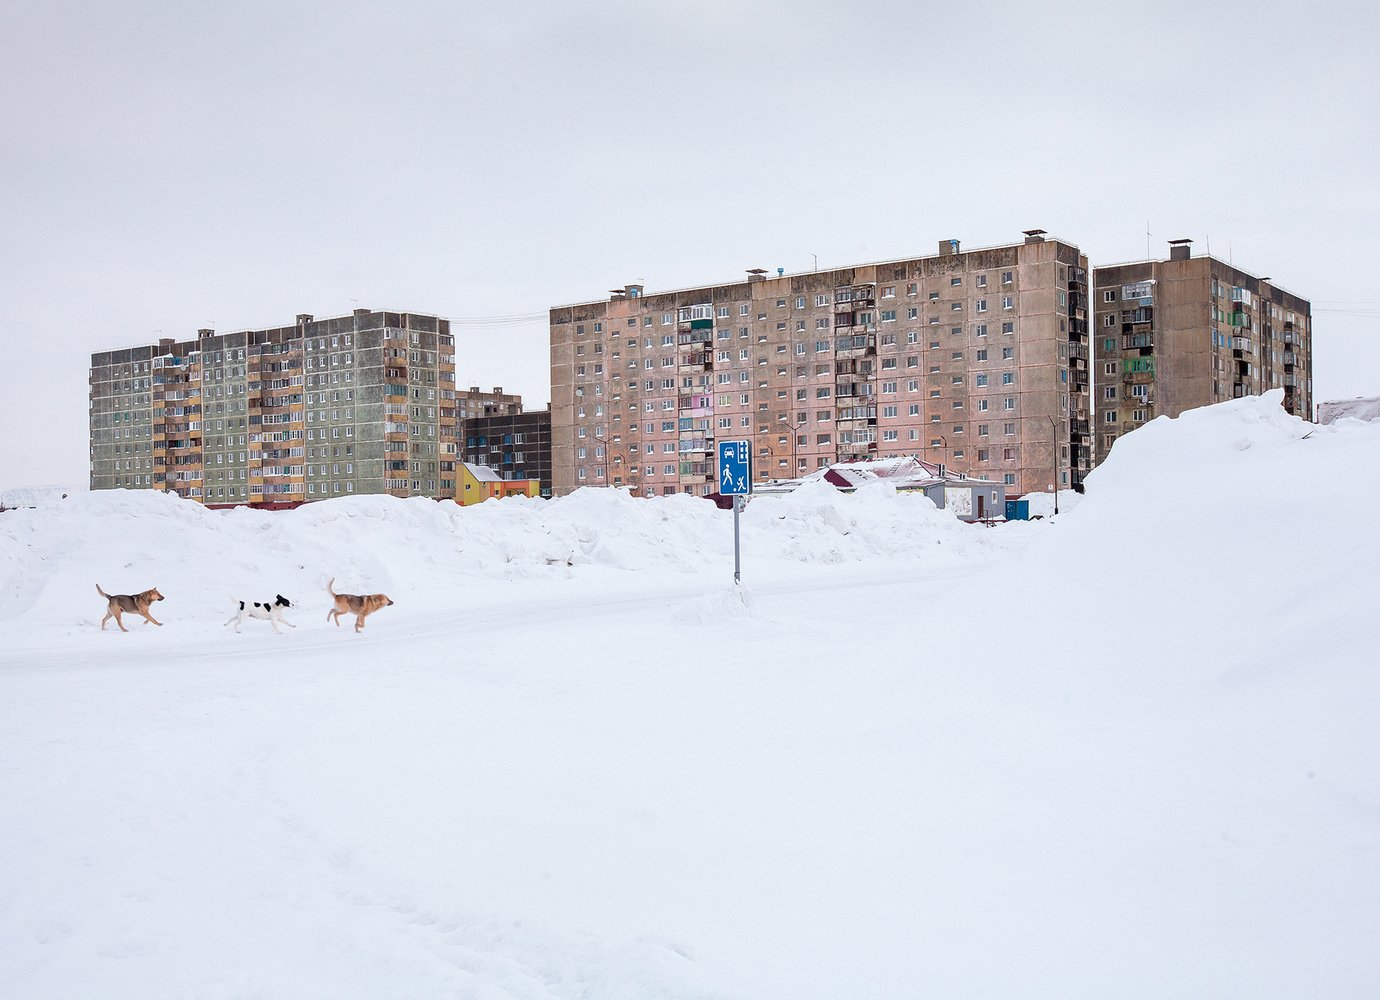 Concrete landscapes of the Far North: a rare view of Siberia's Soviet architecture